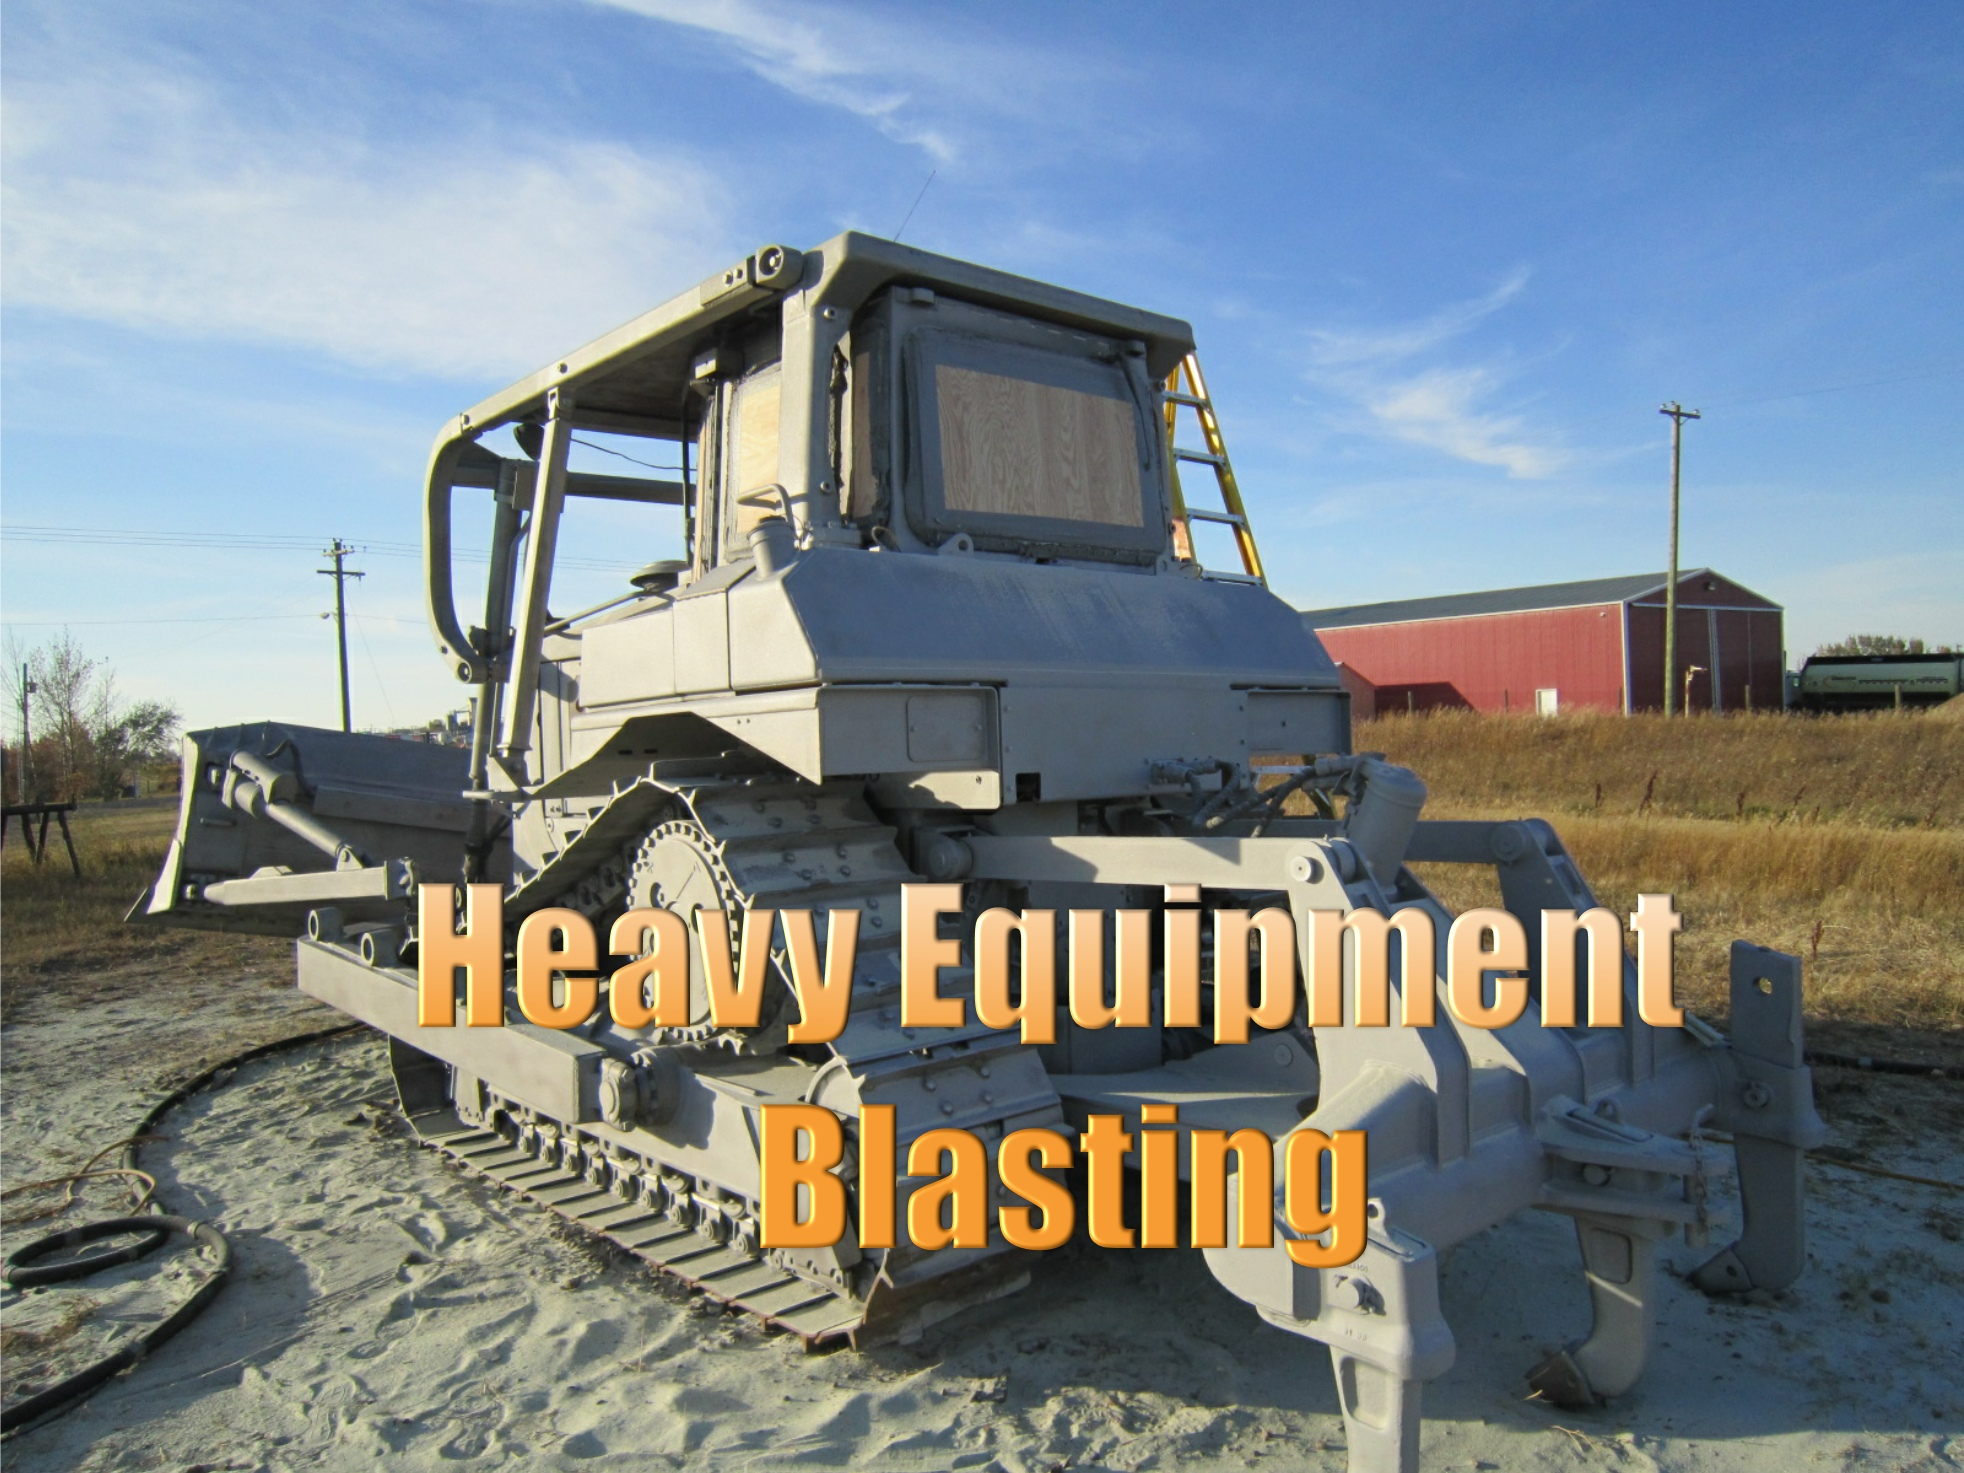 Heavy Equipment Blasting